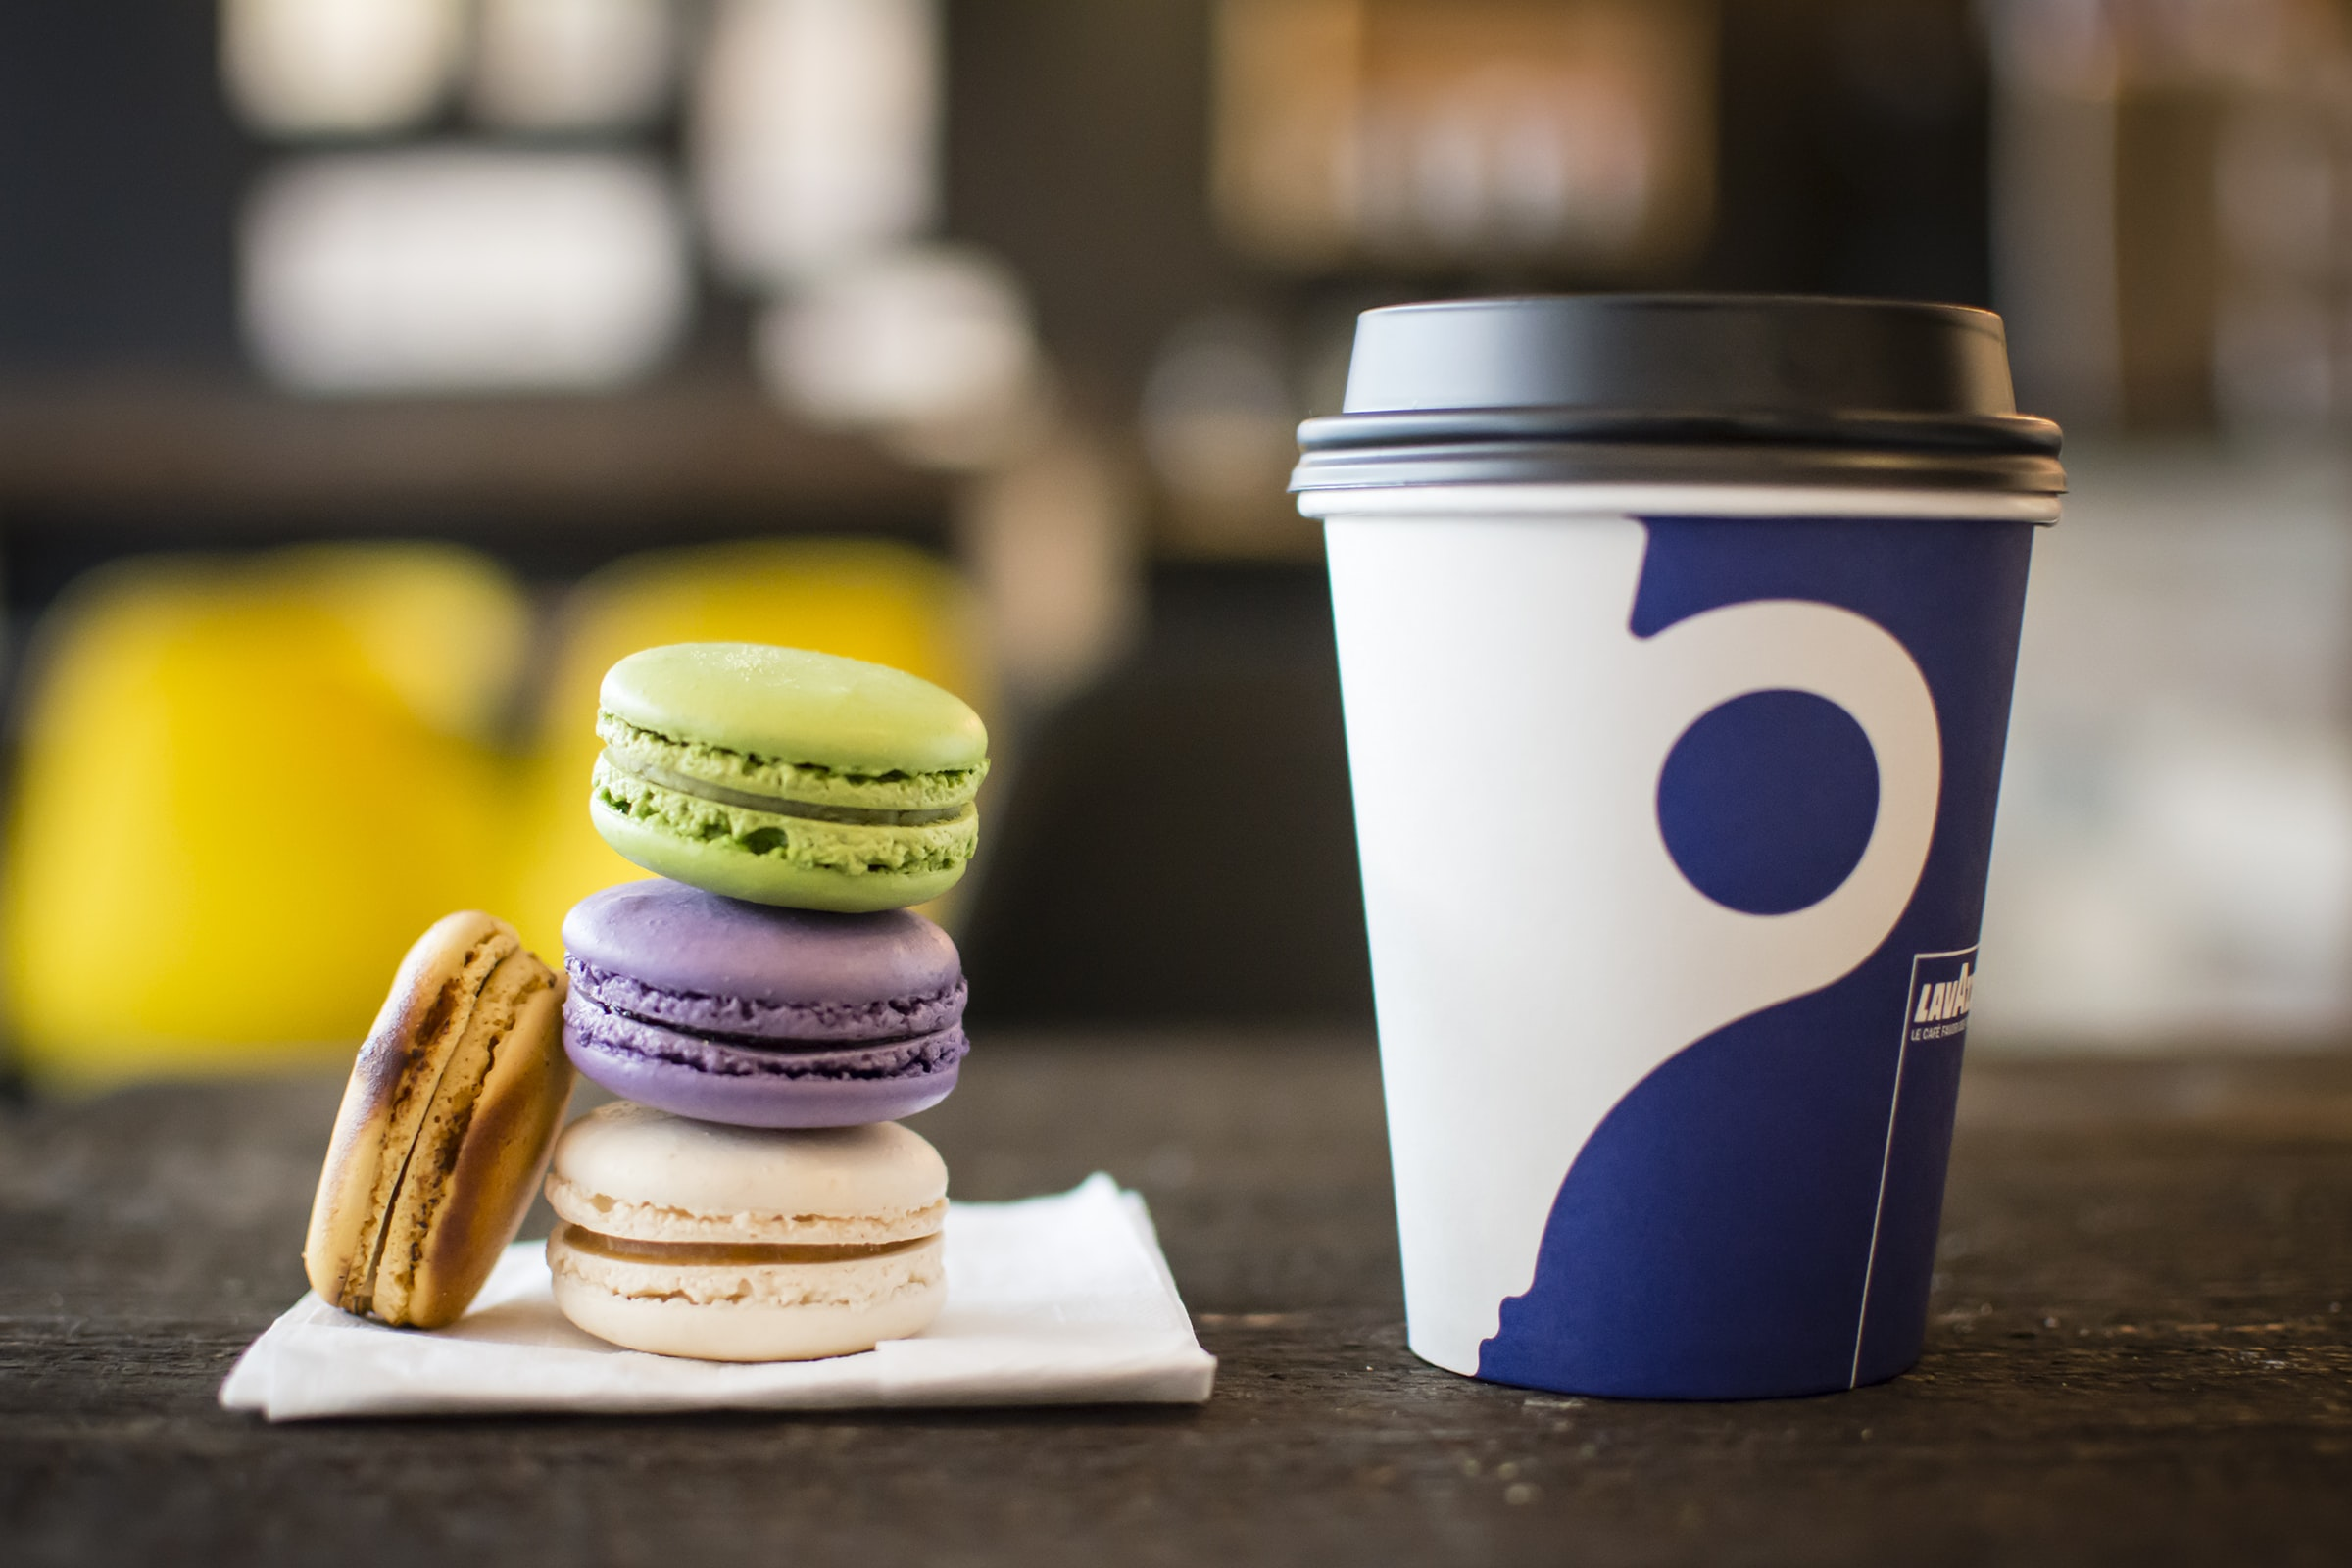 Colorful macarons stacked next to a cup of coffee